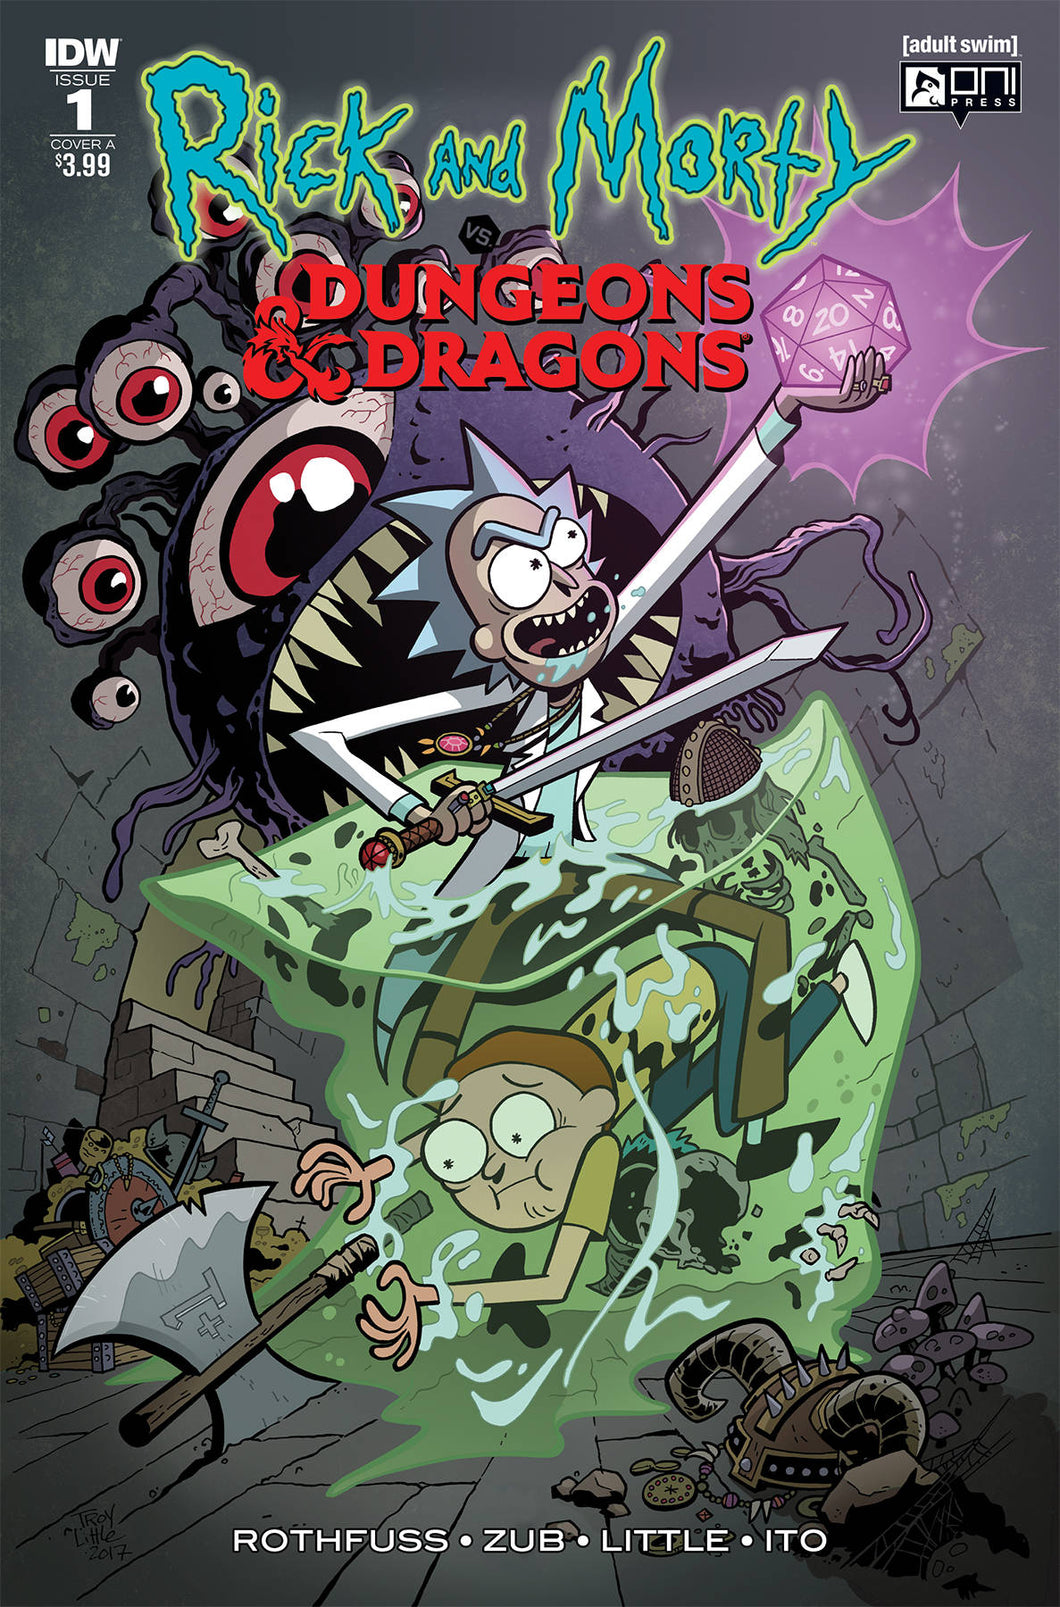 RICK & MORTY VS DUNGEONS & DRAGONS #1 (OF 4) CVR A LITTLE (C (08/29/2018)